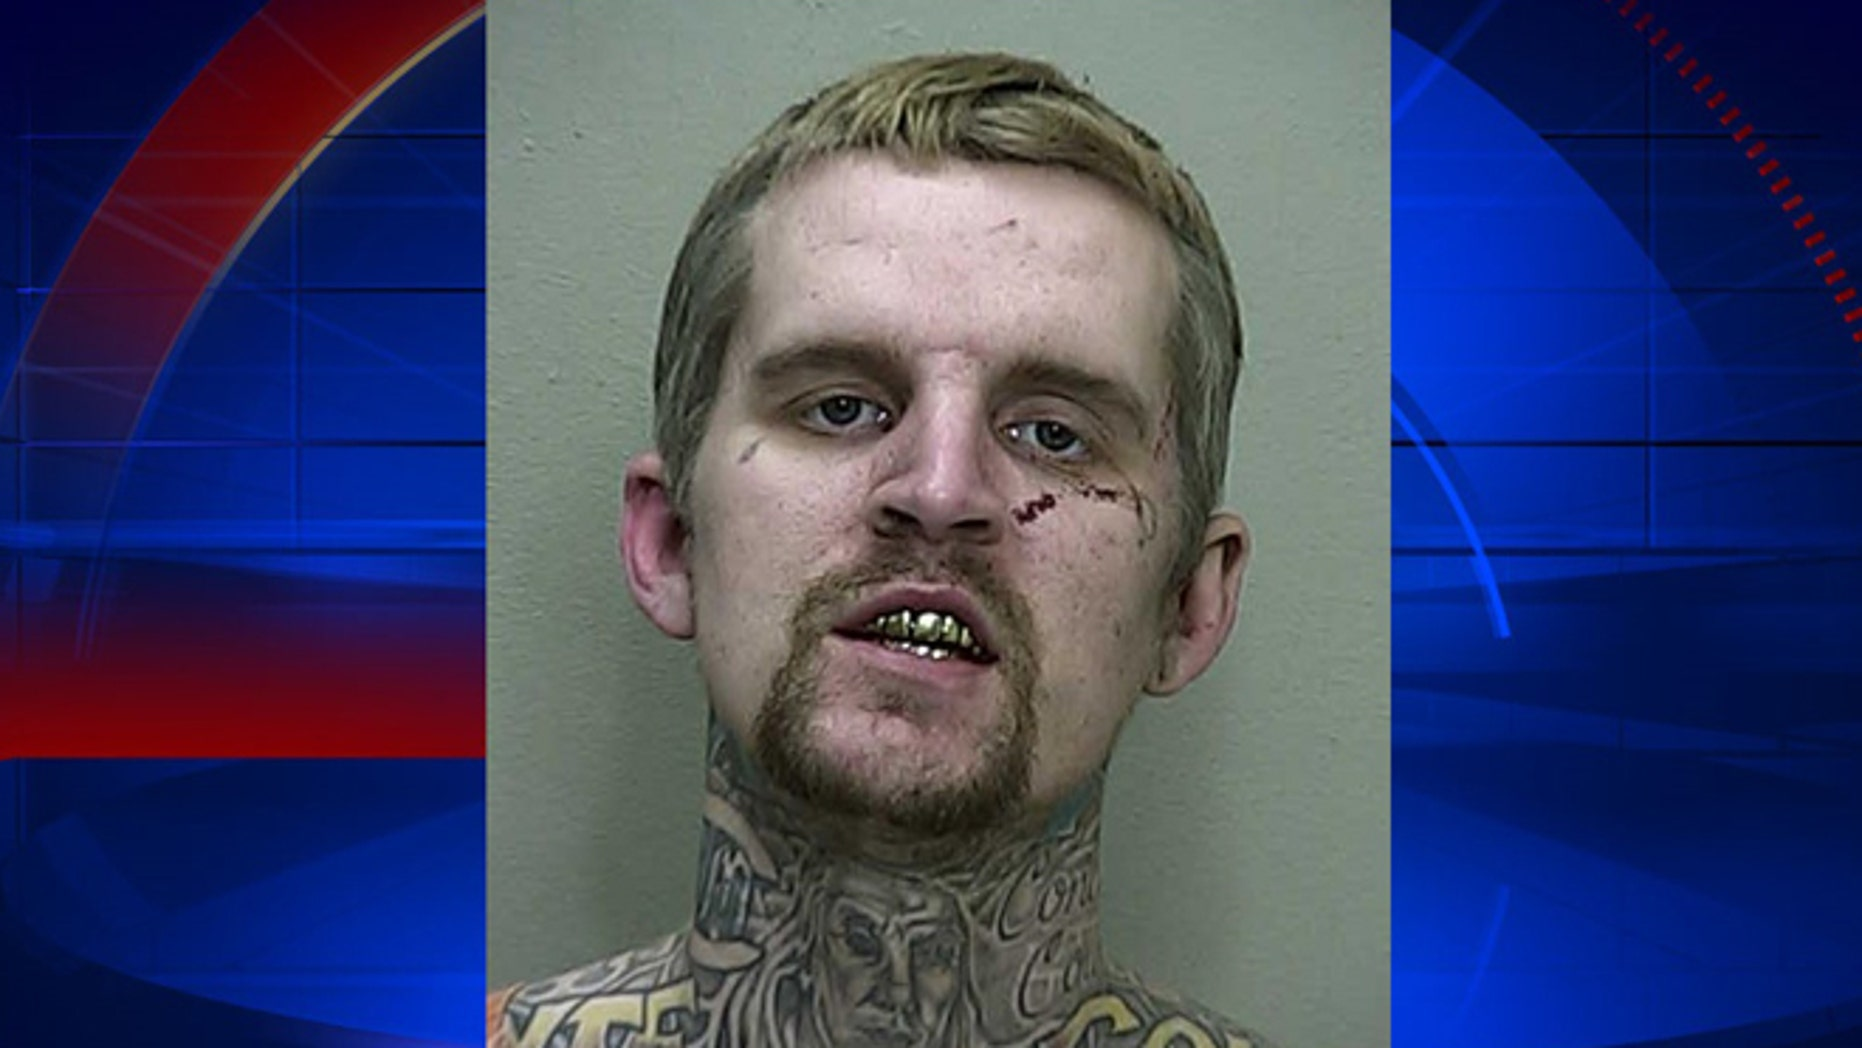 Mugshot of Scott Michael Beekman, also known as 'Gold teeth.'